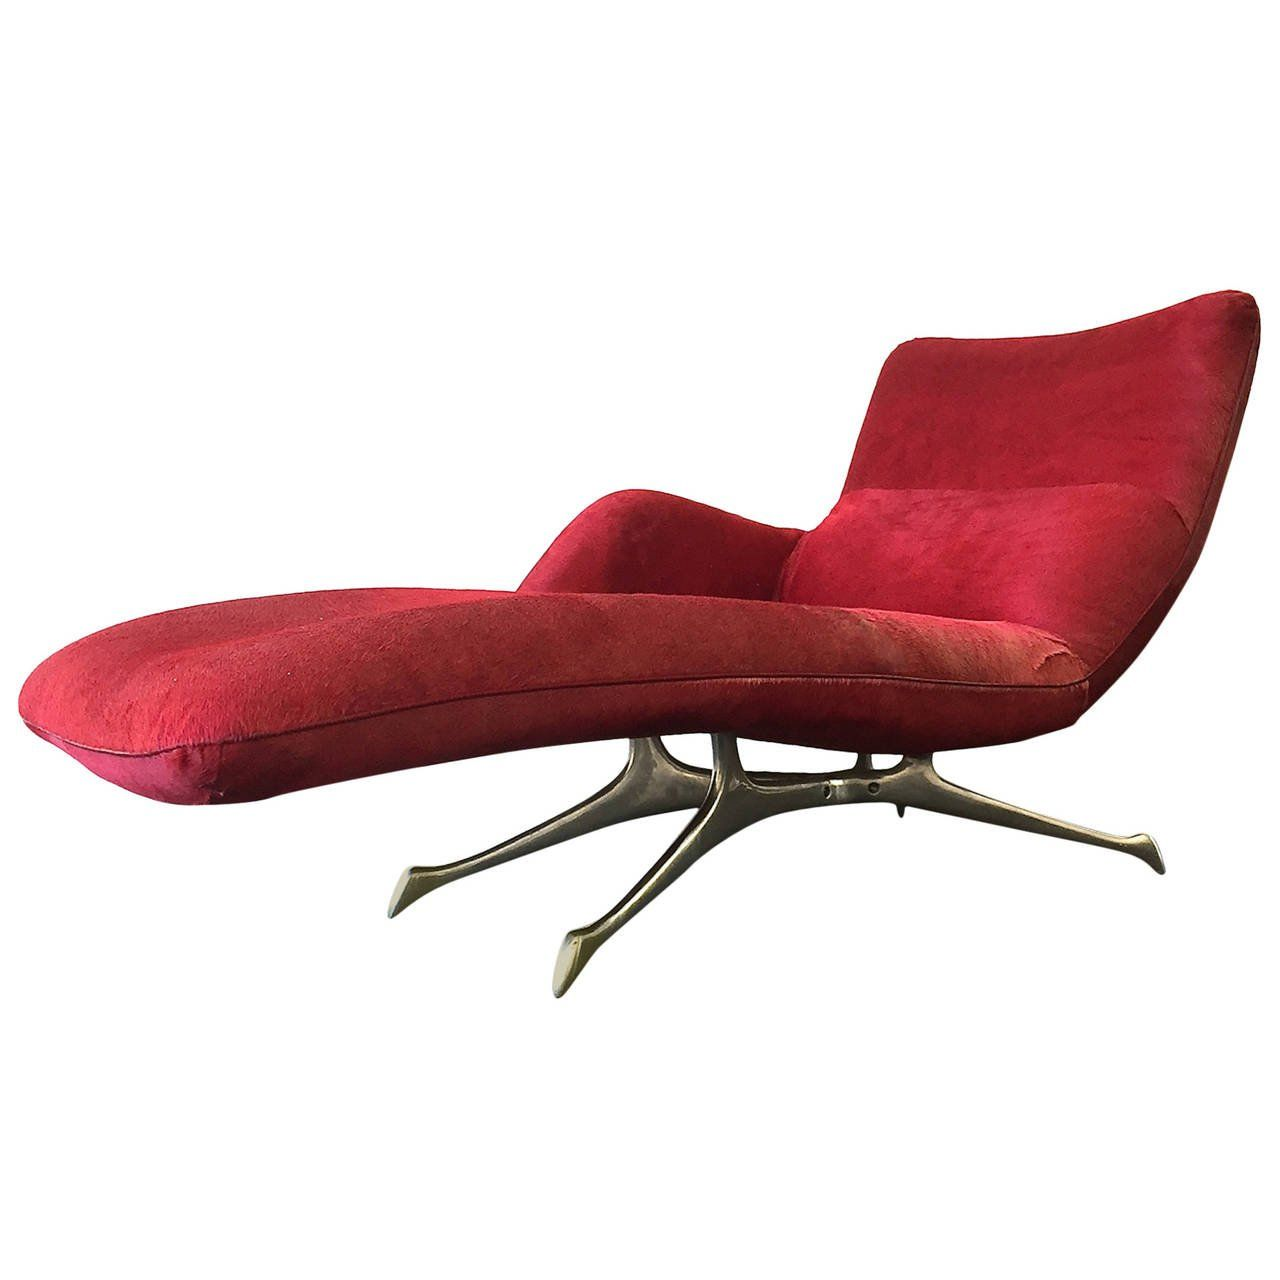 Chaise Longue De Salon Génial Vk Chaise by Vladimir Kagan Covered In Red Fur